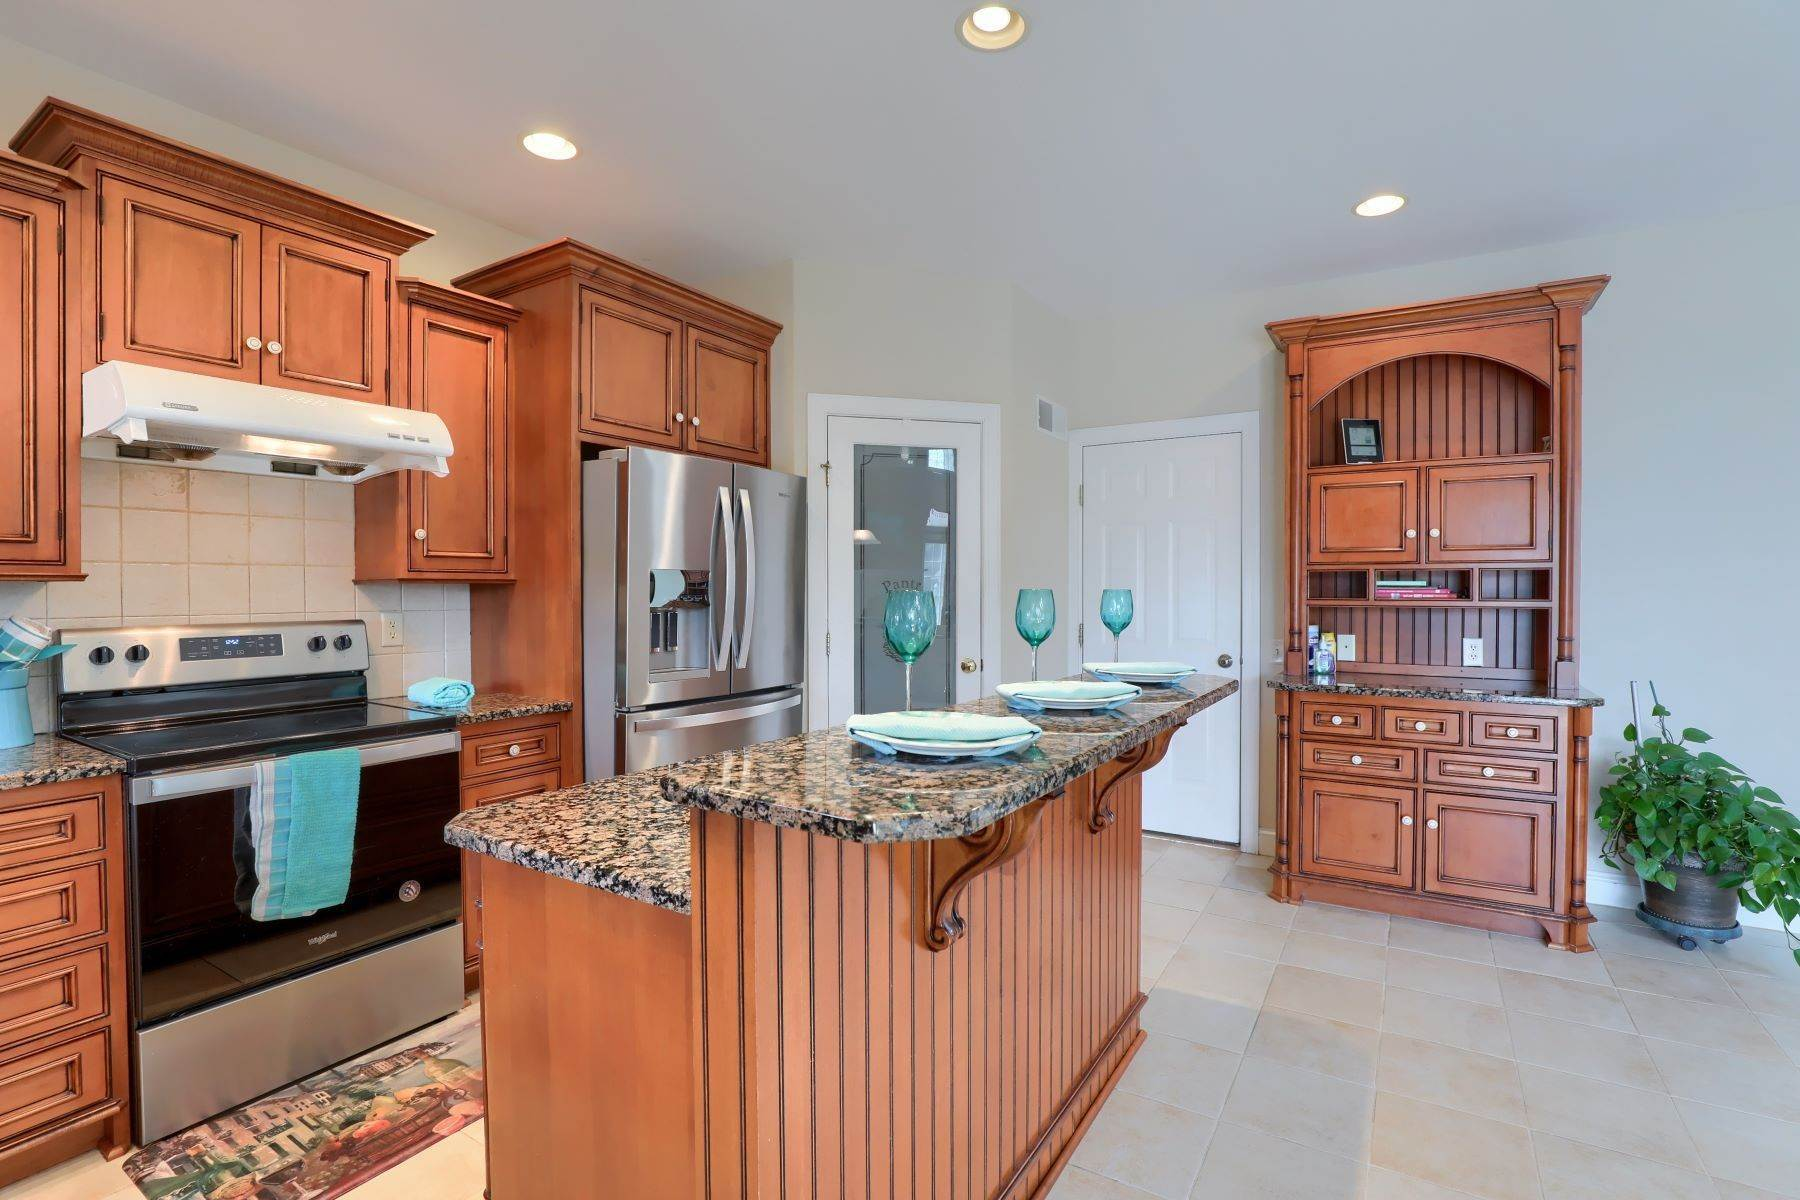 10. Single Family Homes for Sale at 18 Jared Place Lititz, Pennsylvania 17543 United States